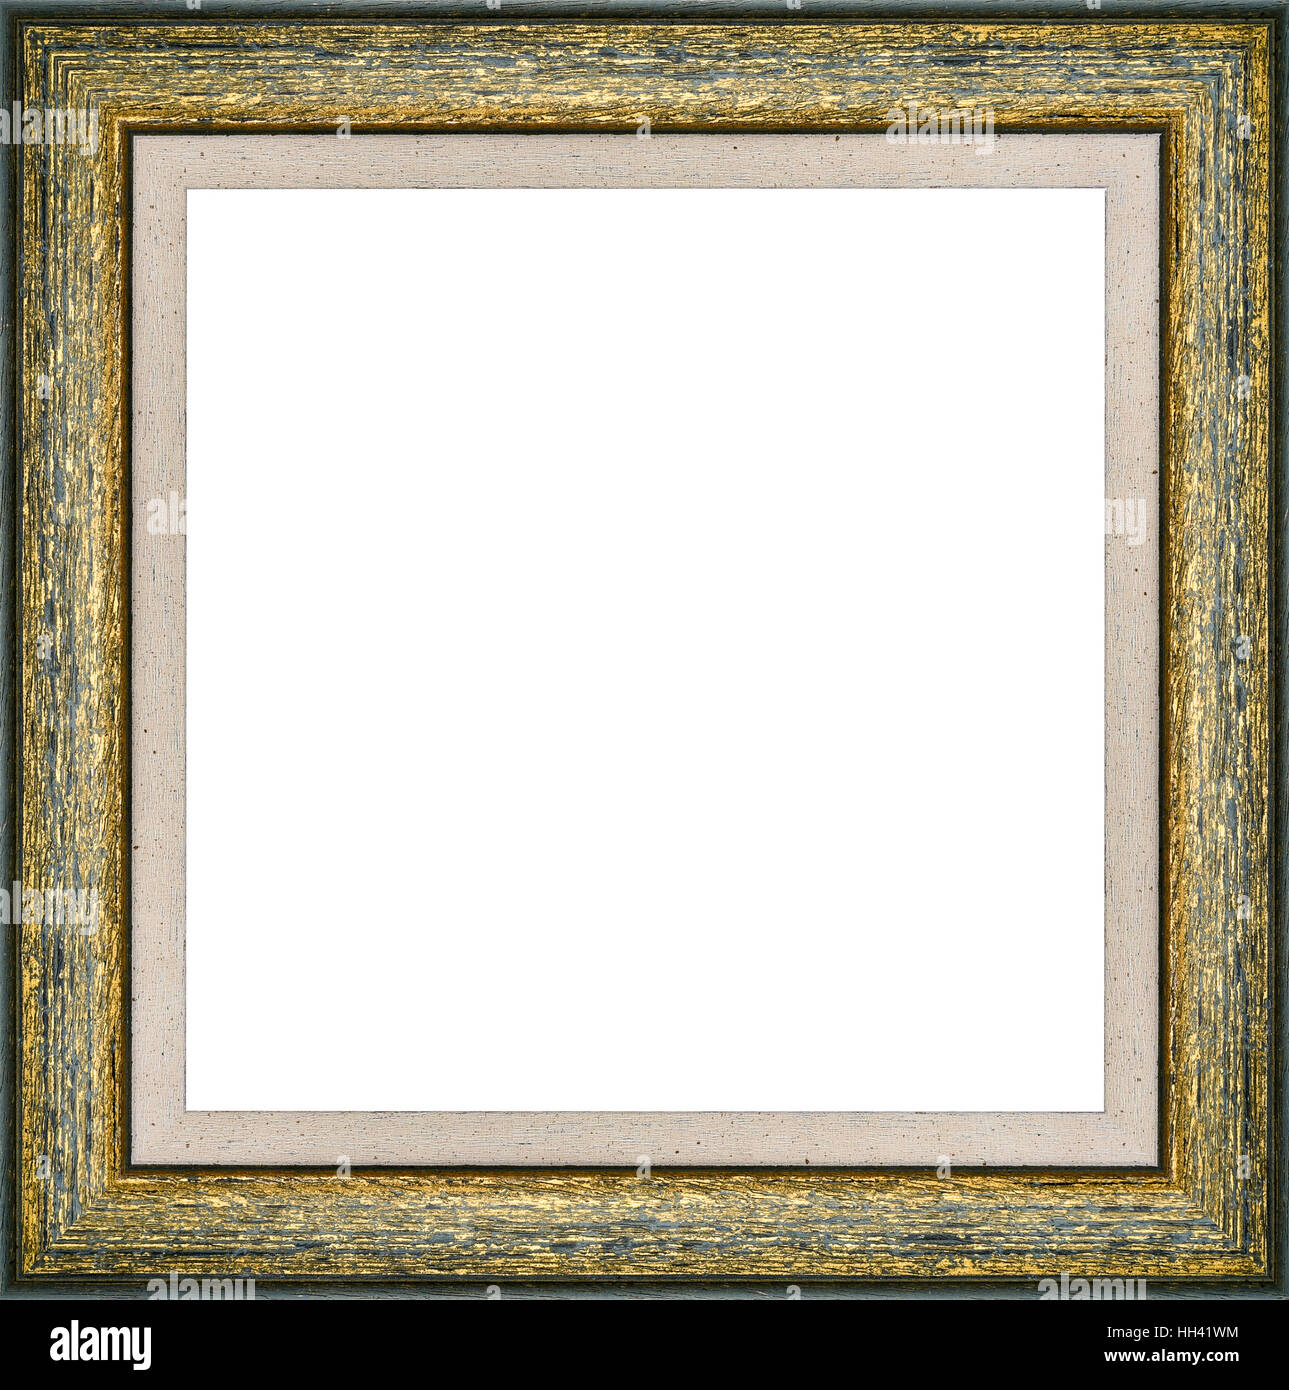 Antique Painting Frame Stock Photos & Antique Painting Frame Stock ...